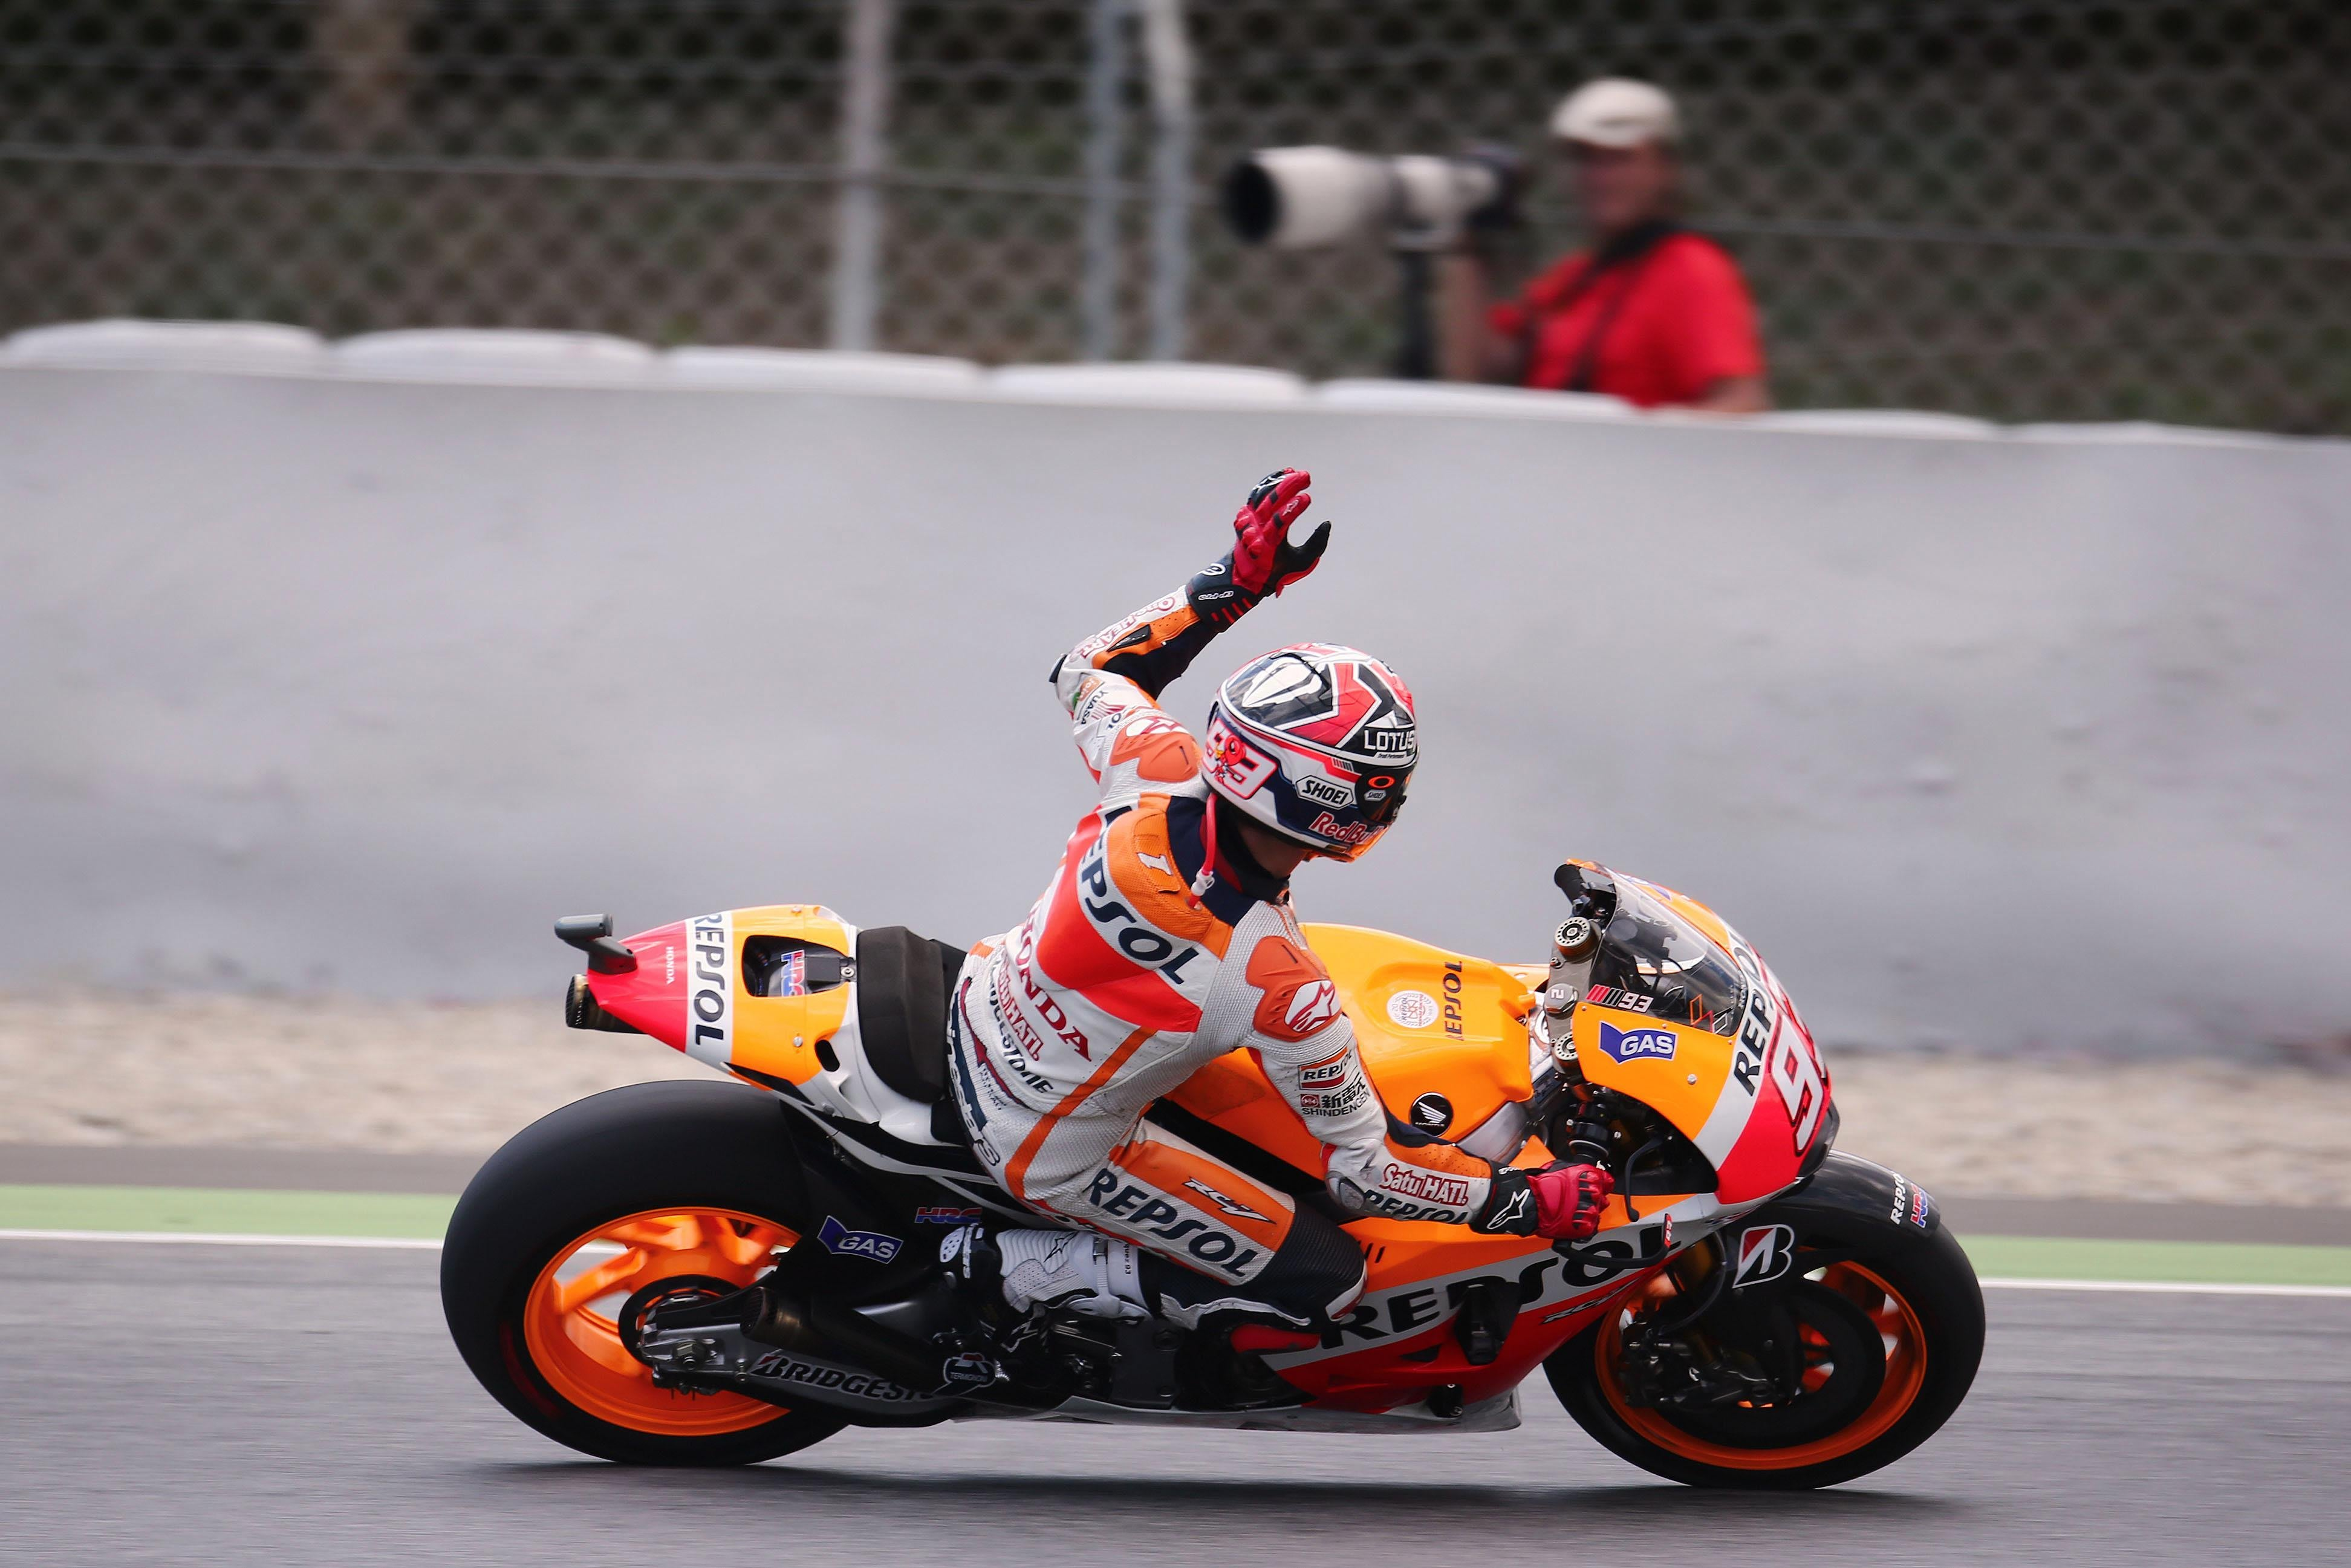 Motogp Race Report Quotes And Facts From Catalunya